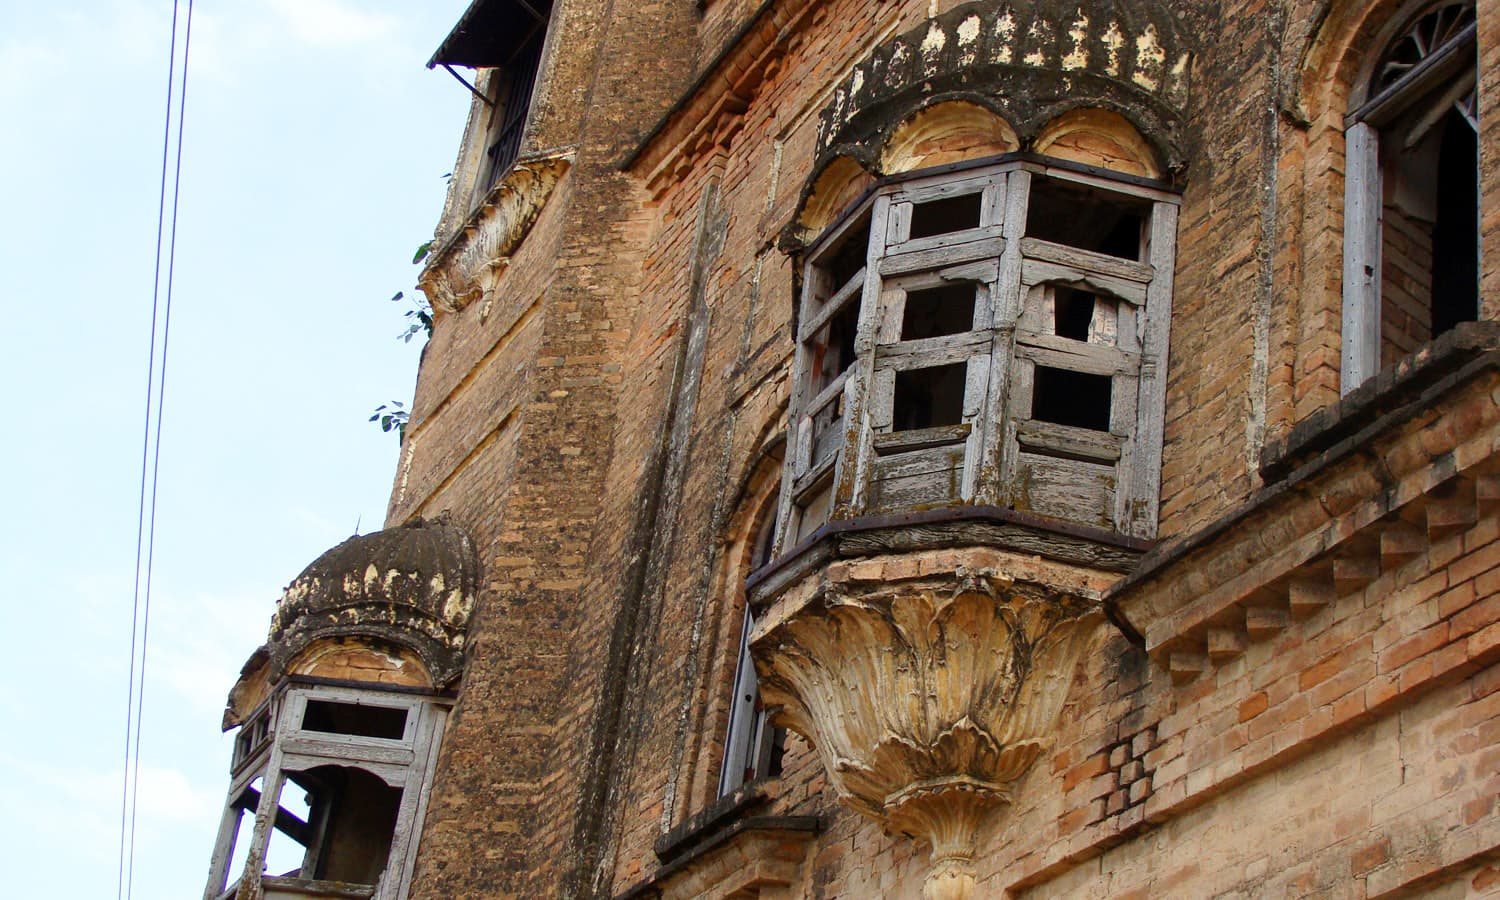 Jharoka in the haveli of Bakhshi Ram Singh.